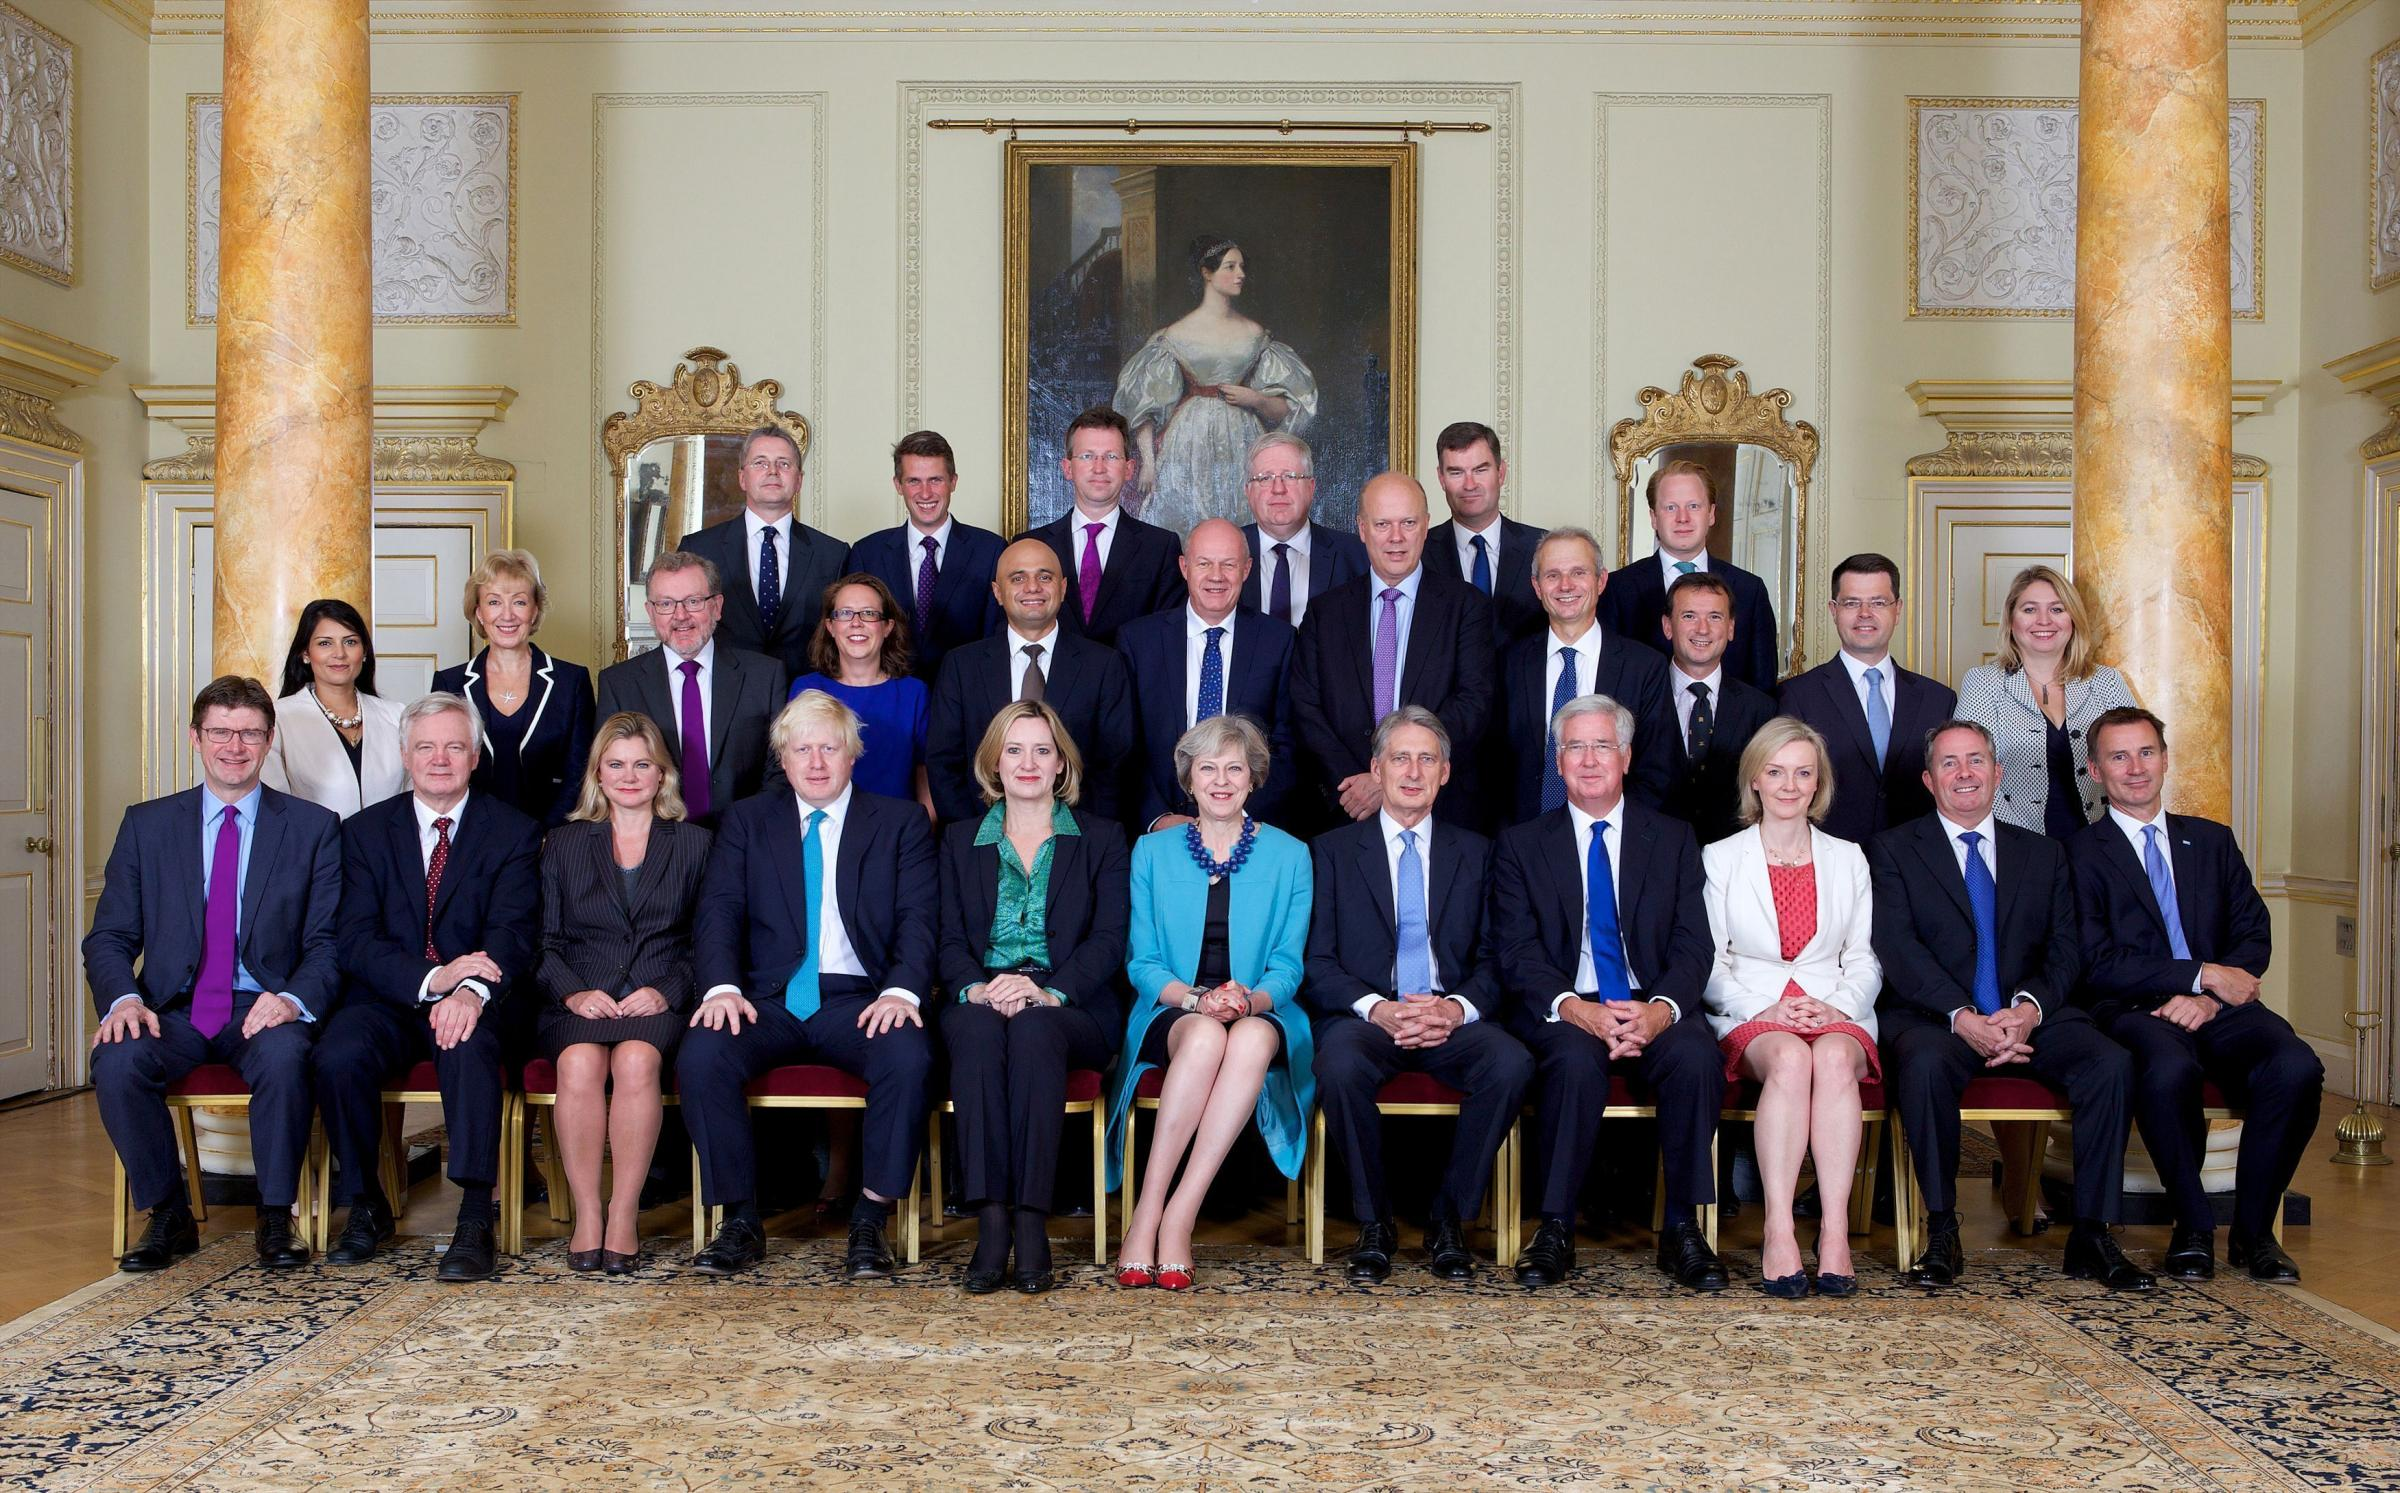 CABBAGES?: The former cabinet of Theresa May. PICTURE: Zoe Norfolk/Downing Street/PA Wire